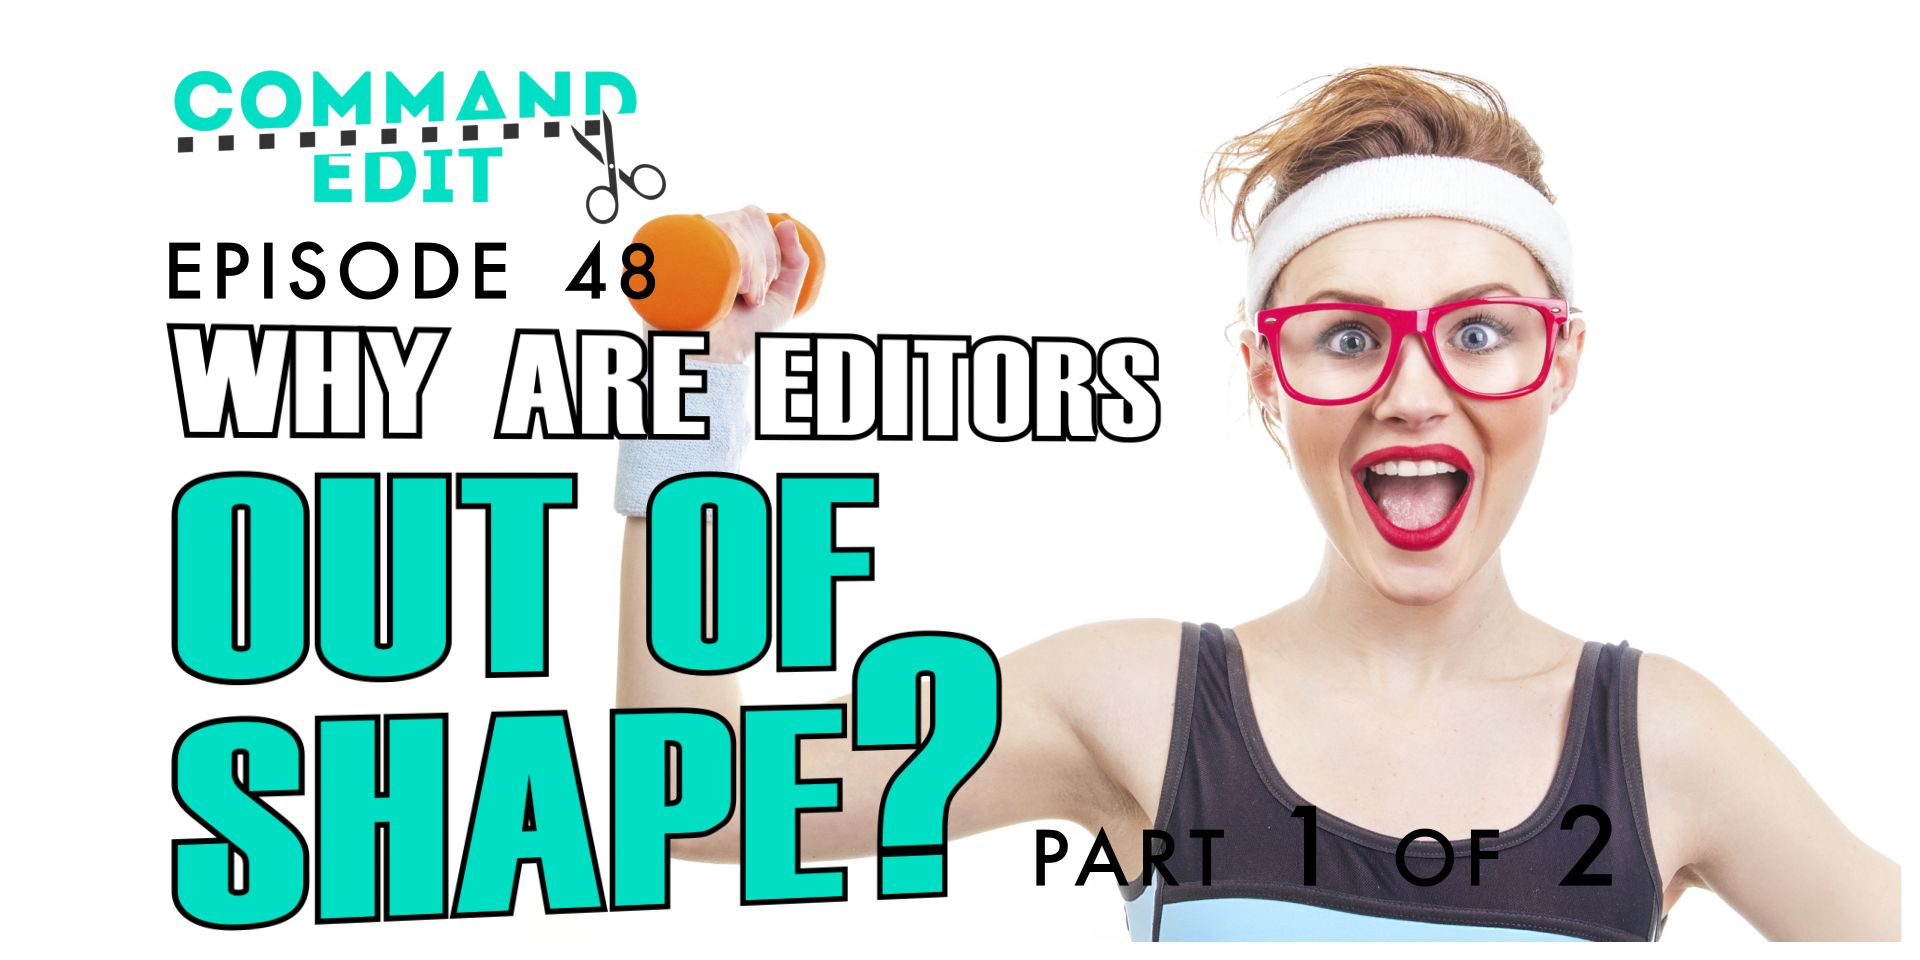 Command Edit Podcast health episode why are editors out of shape